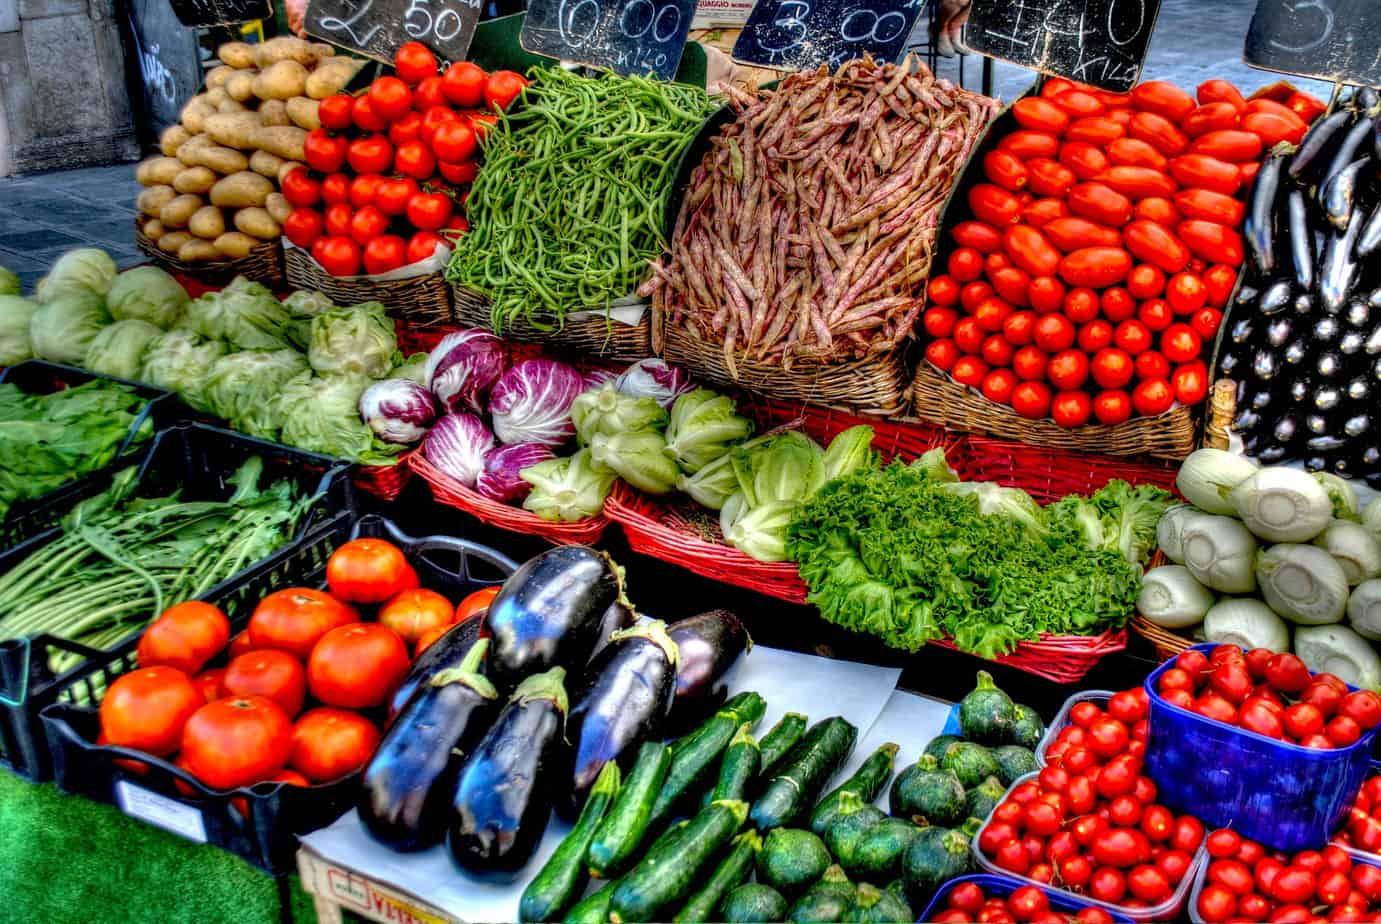 Vegetable health benefits shopping grocery store fresh produce